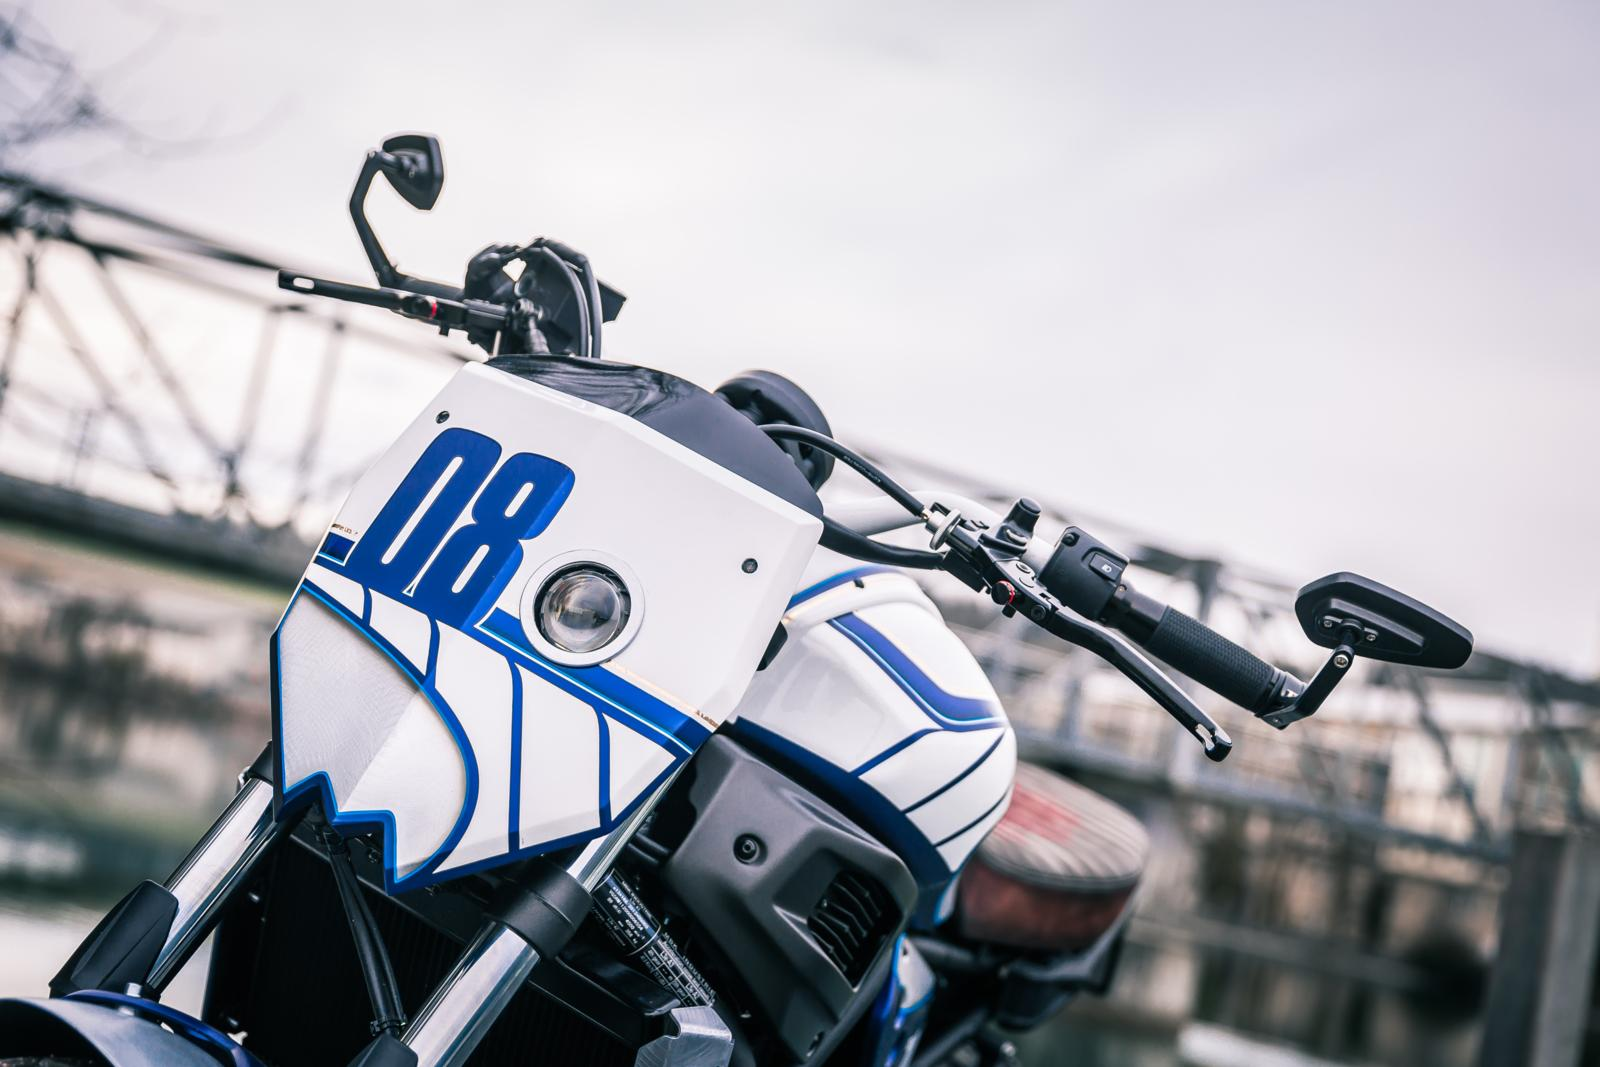 Yamaha XSR700 FUJIN by Bobber Garage (13)_preview